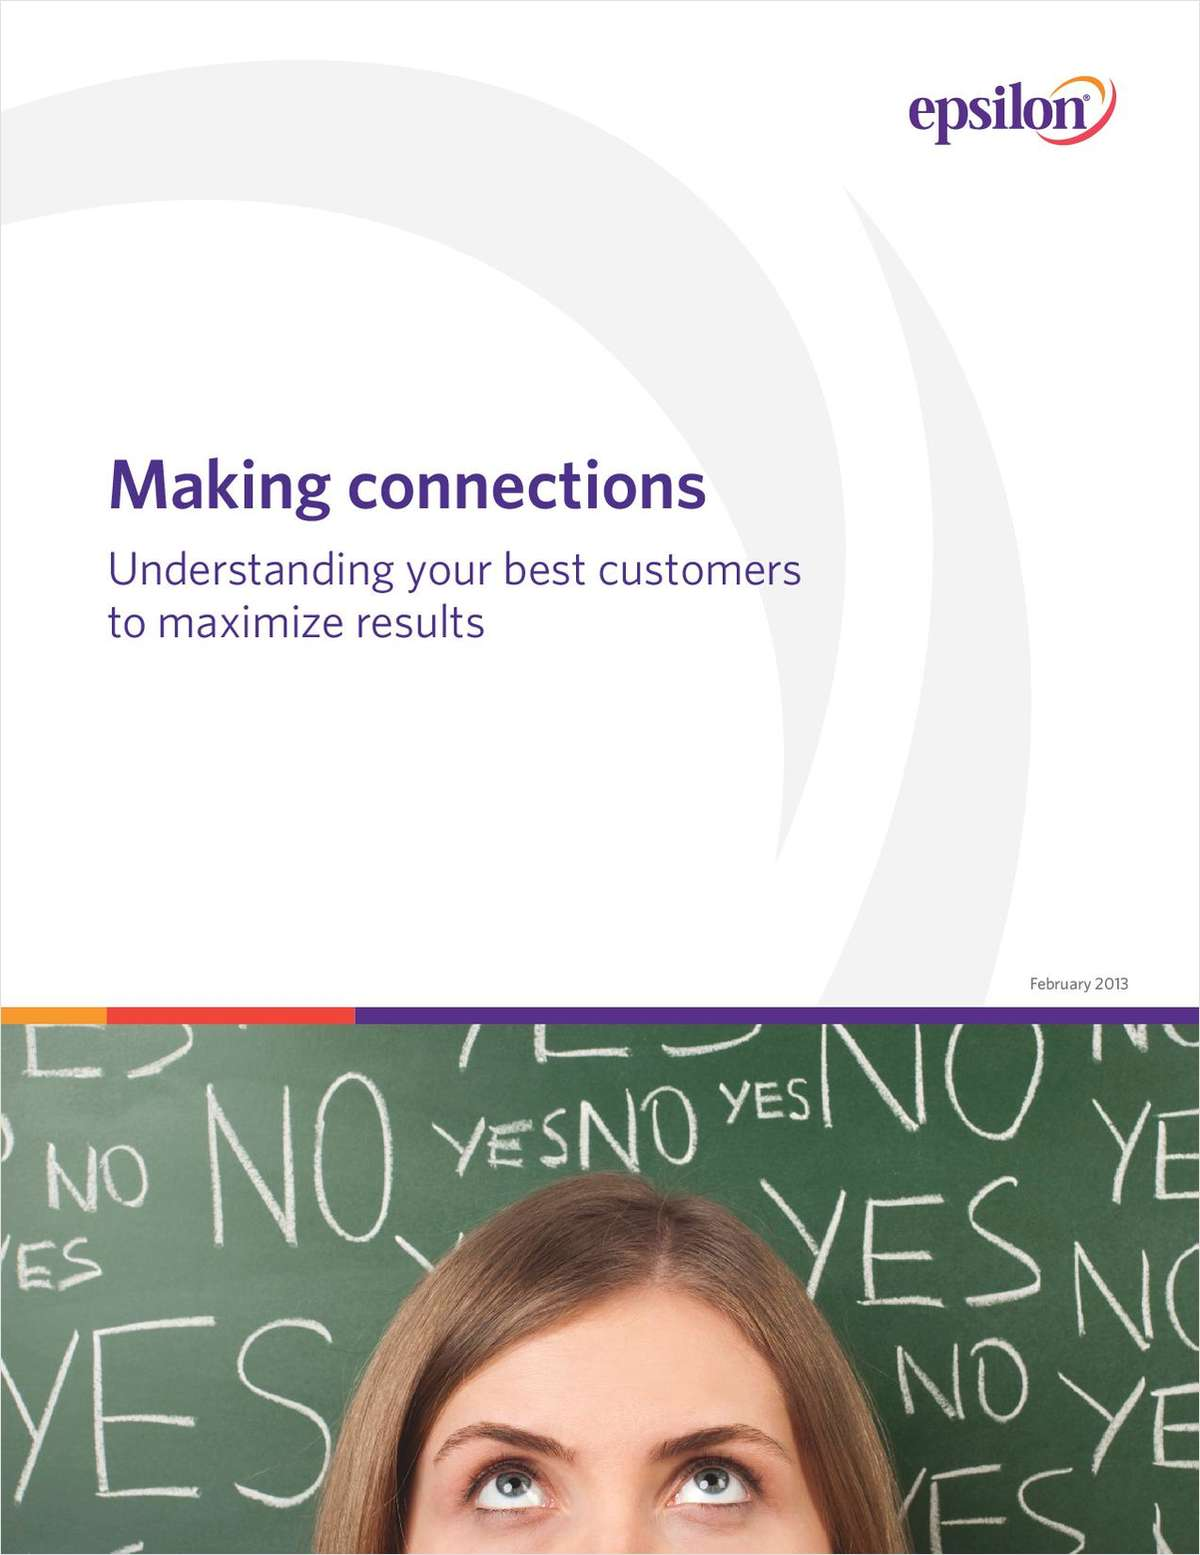 Making Connections: Understand Your Best Customers to Maximize Results